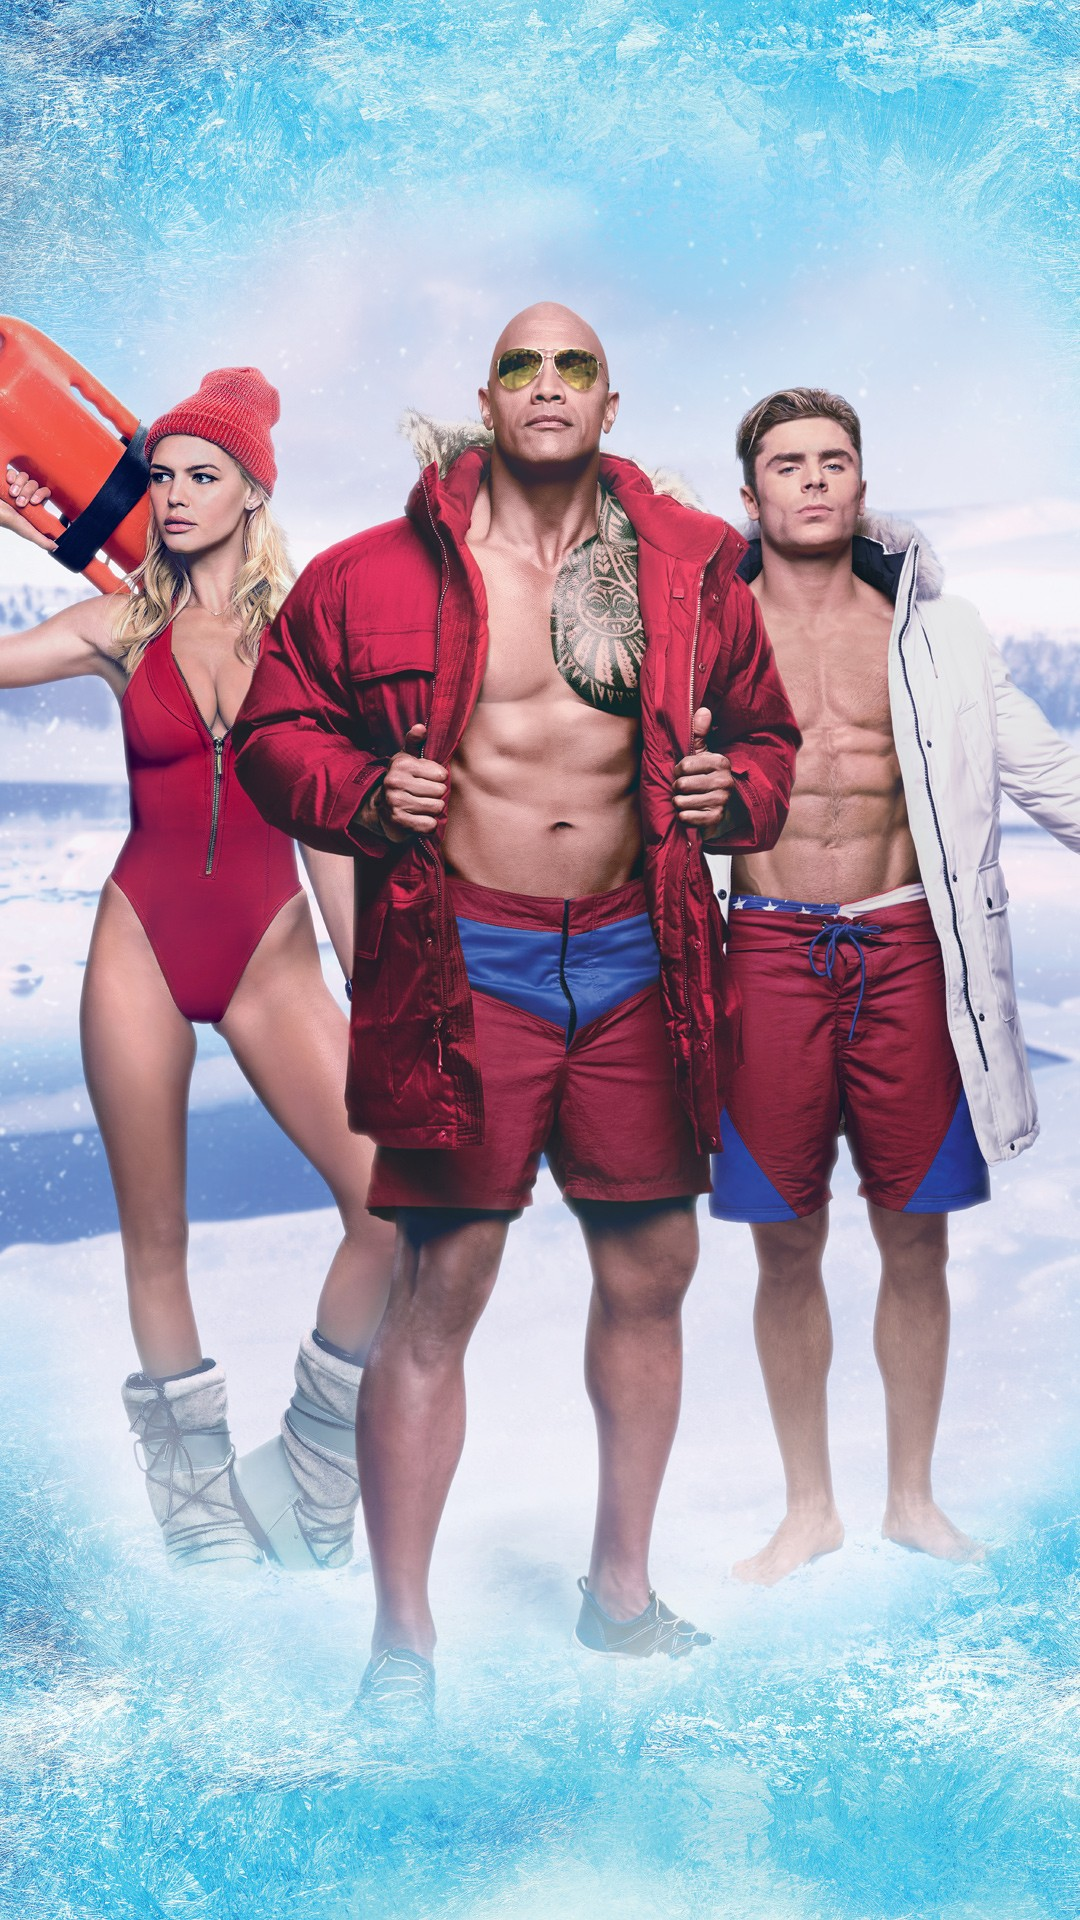 Iphone 8 Plus X Ray Wallpaper Baywatch 2017 4k Wallpapers Hd Wallpapers Id 19931